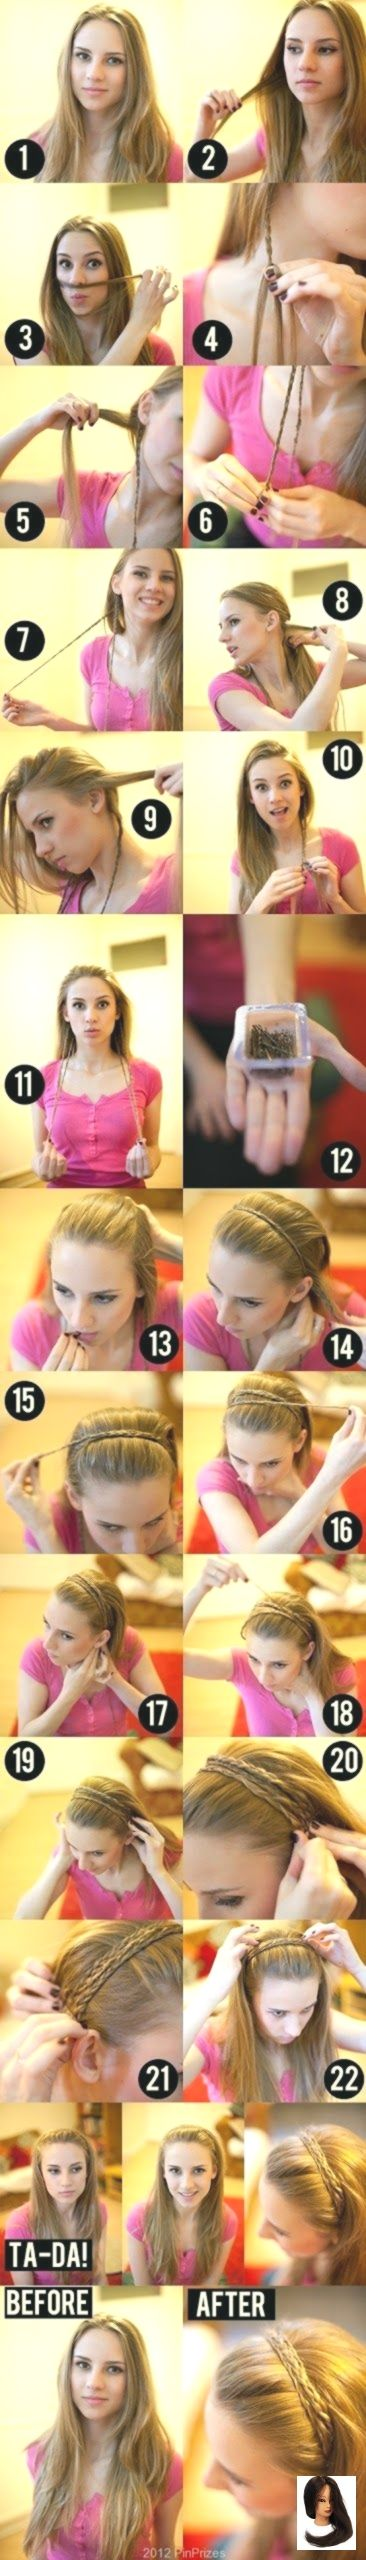 #simple #braided #hairstyle tutorial #summer hairstyles 5 Easy Braided Summer Hairstyles braid your hair and use it as a s …